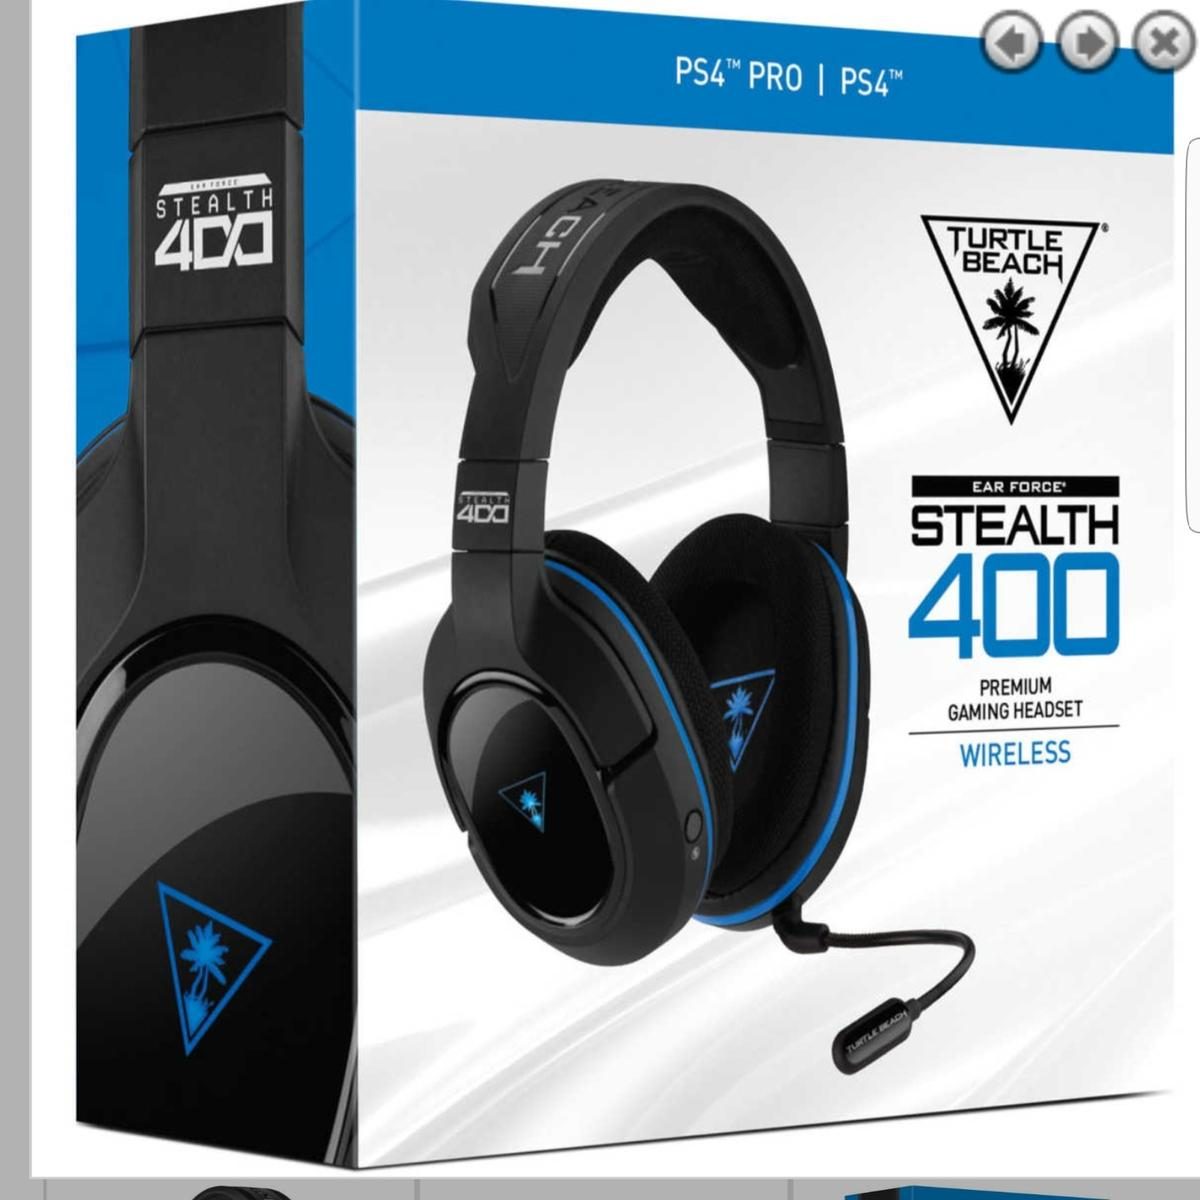 Ps4 Turtlebeach Wireless Stealth 400 Headset In Ts25 Hartlepool For 30 00 For Sale Shpock